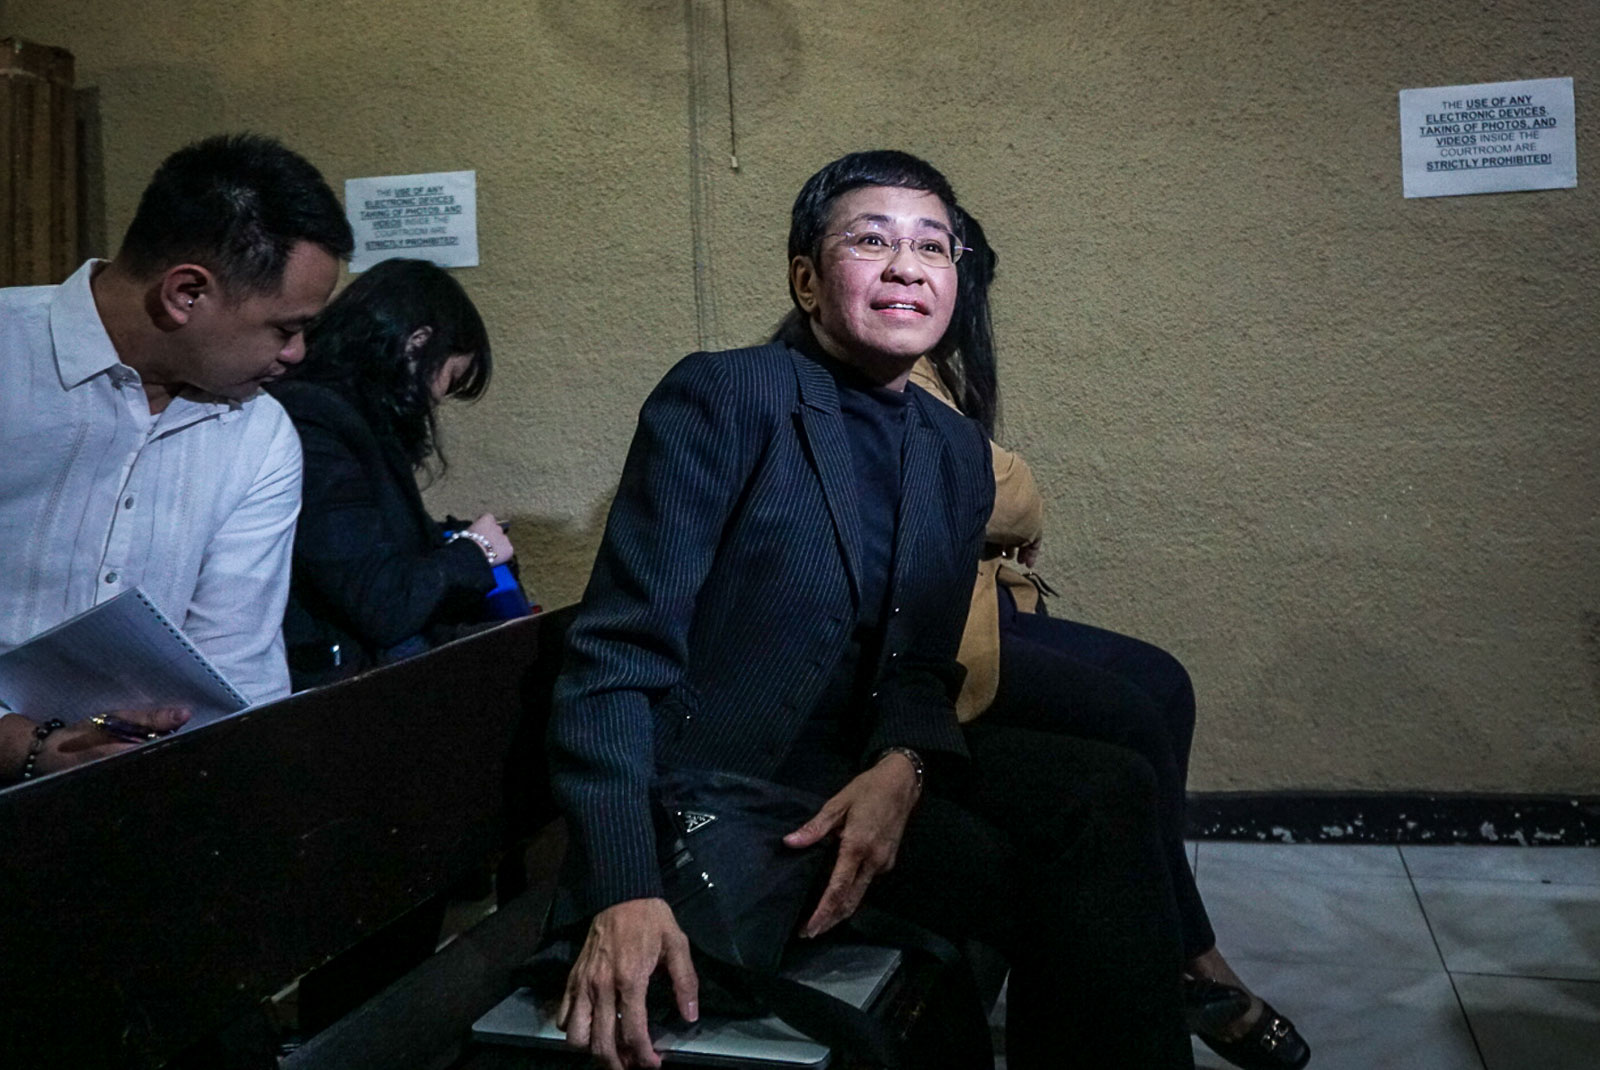 D-DAY. A Manila judge will rule on the cyber libel case on April 3, 2020. File photo by Lito Borras/ Rappler